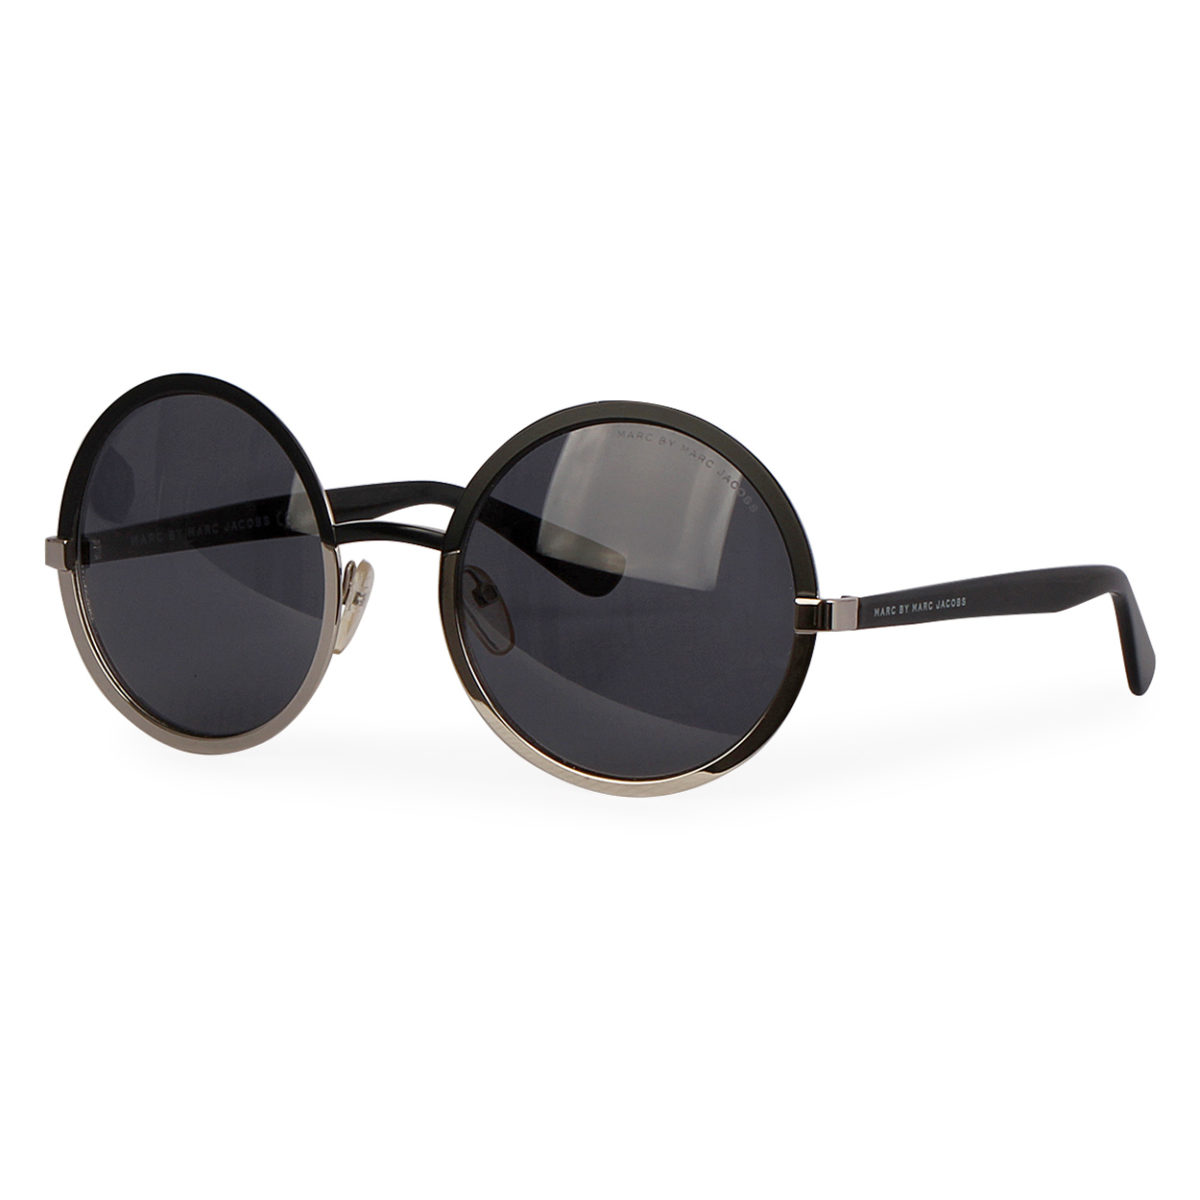 a8cf50010947 MARC JACOBS Round Sunglasses MMJ 437/S Black | Luxity